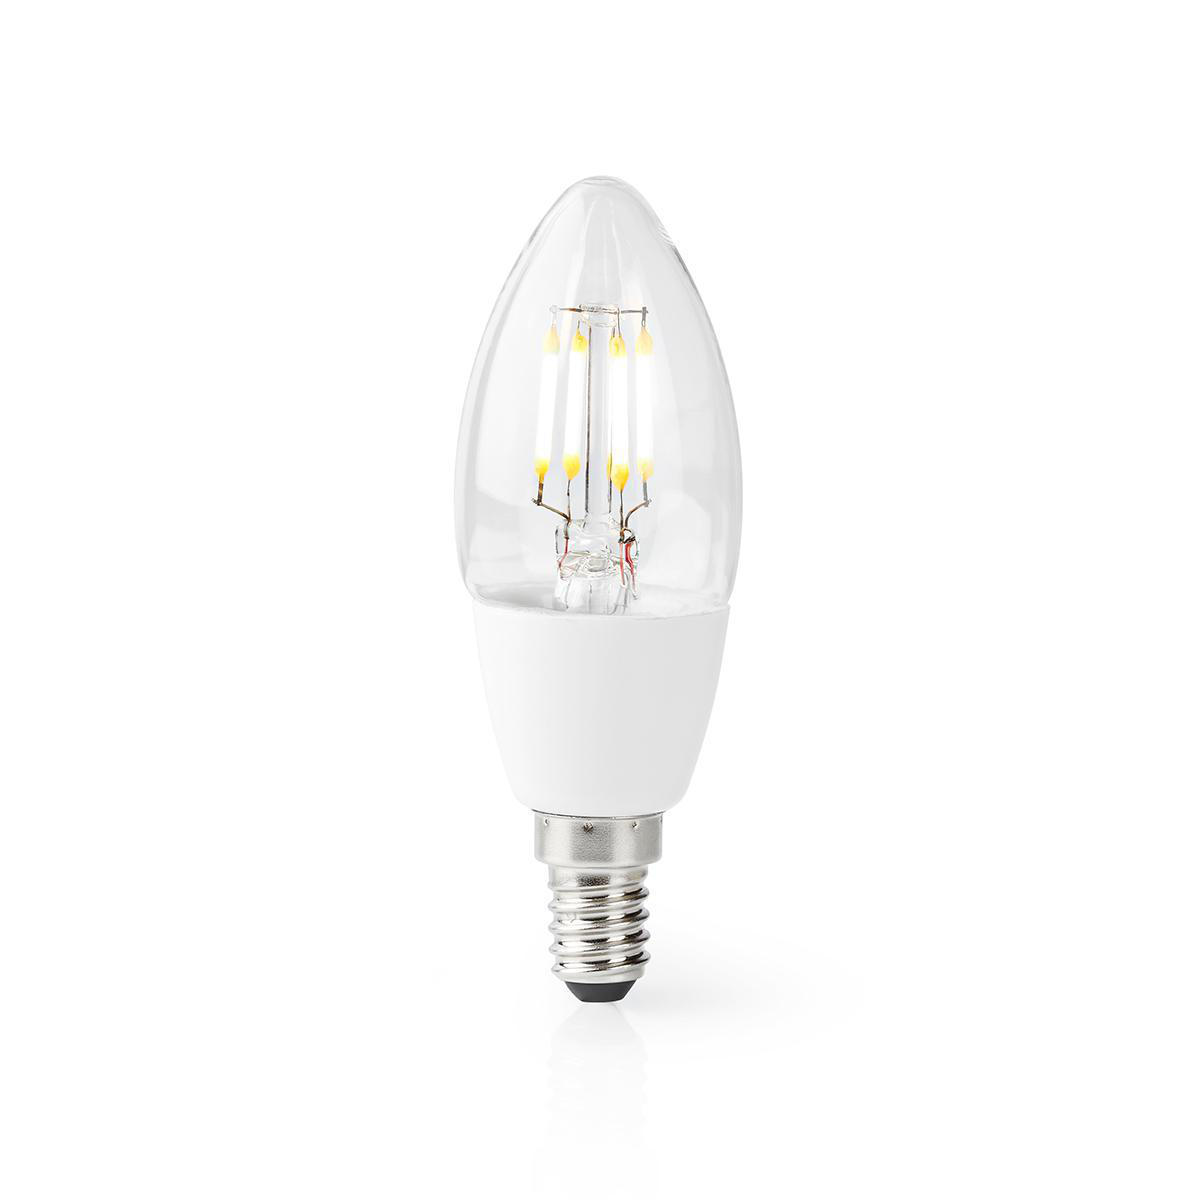 Slimme Led Lamp E14 fitting 2700K - Warm wit - lamp aan